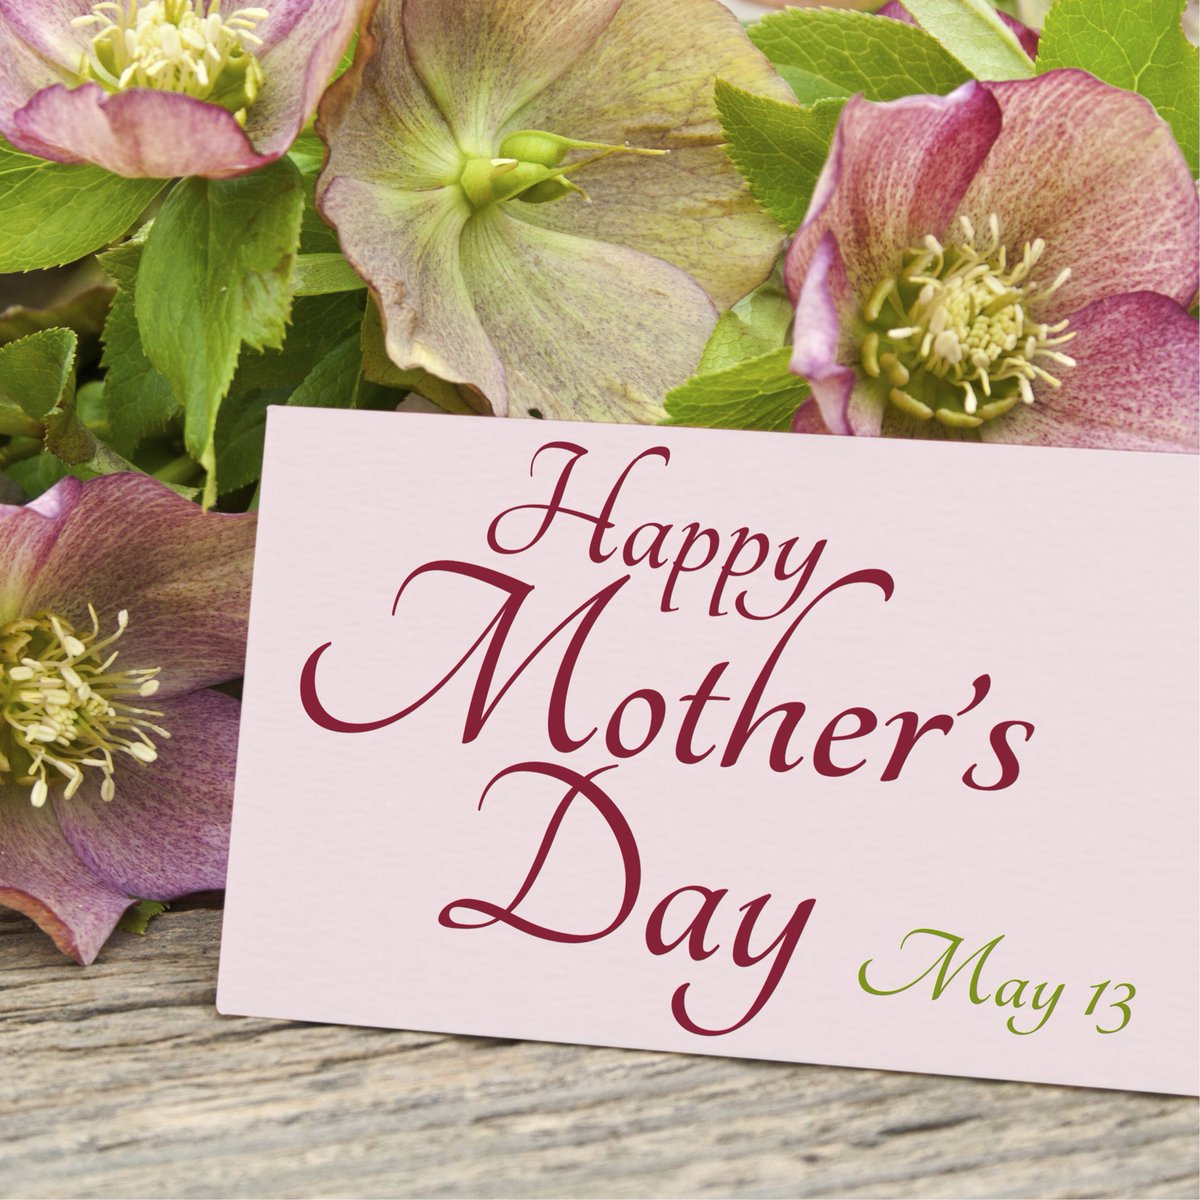 il house democrats on twitter happy mother s day to all of the